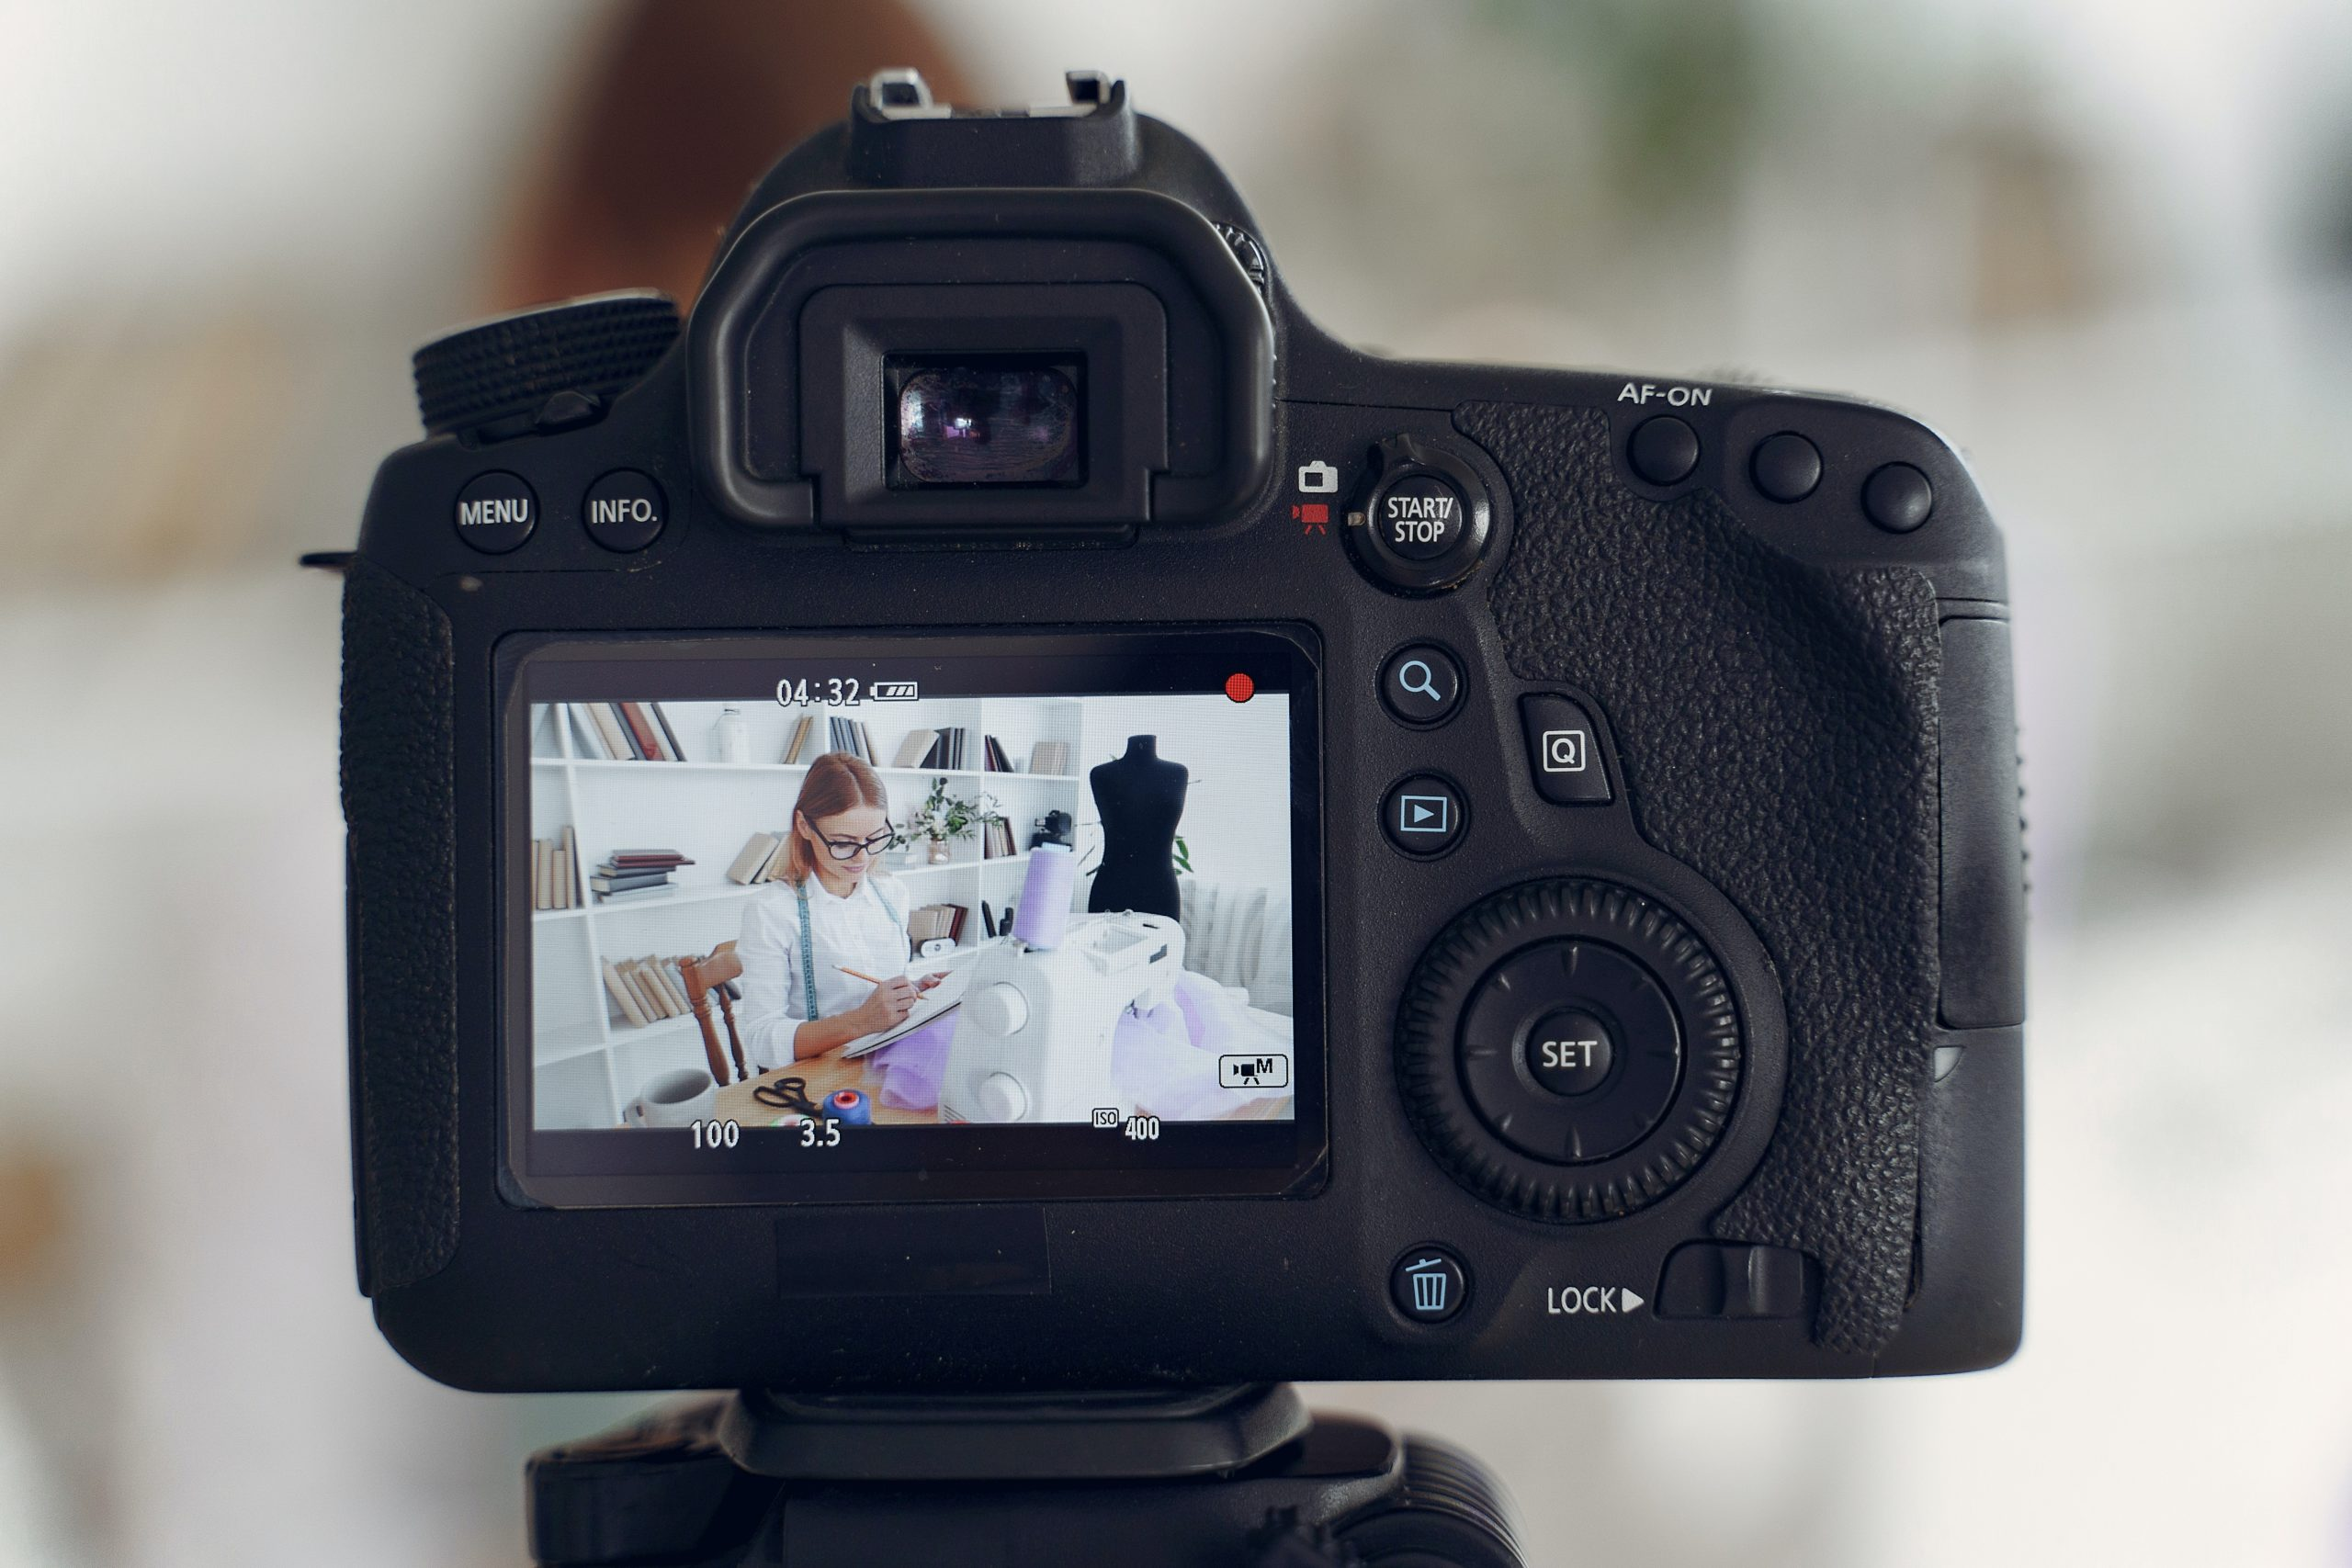 How Can Home Businesses Use Video For Growth In 2020?